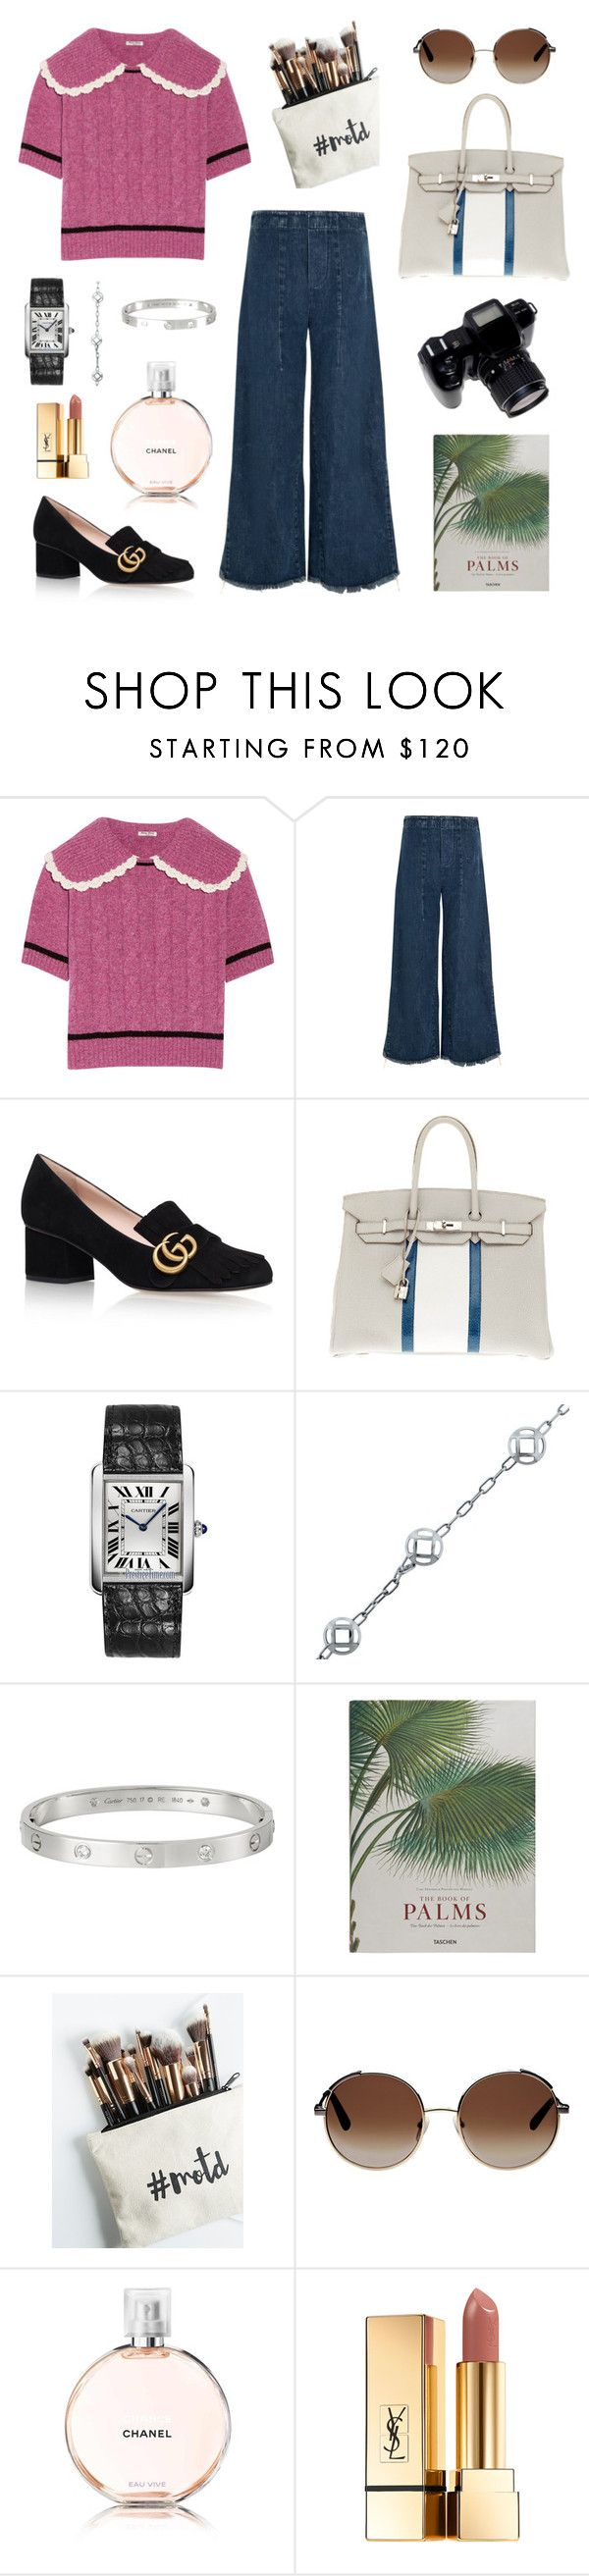 """""""NY9"""" by mommonde ❤ liked on Polyvore featuring Miu Miu, Chloé, Gucci, Hermès, Cartier, Taschen, Free People, Chanel and Yves Saint Laurent"""